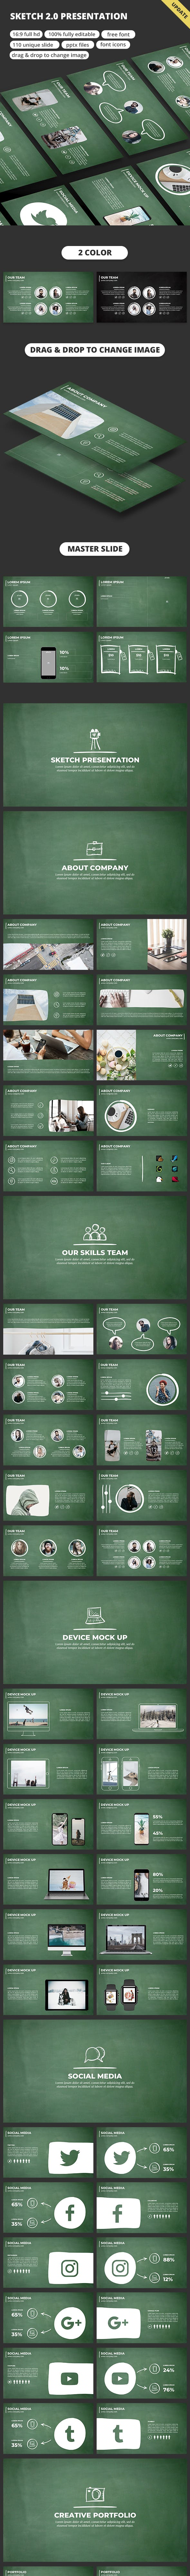 Sketch 2.0 - PowerPoint Template